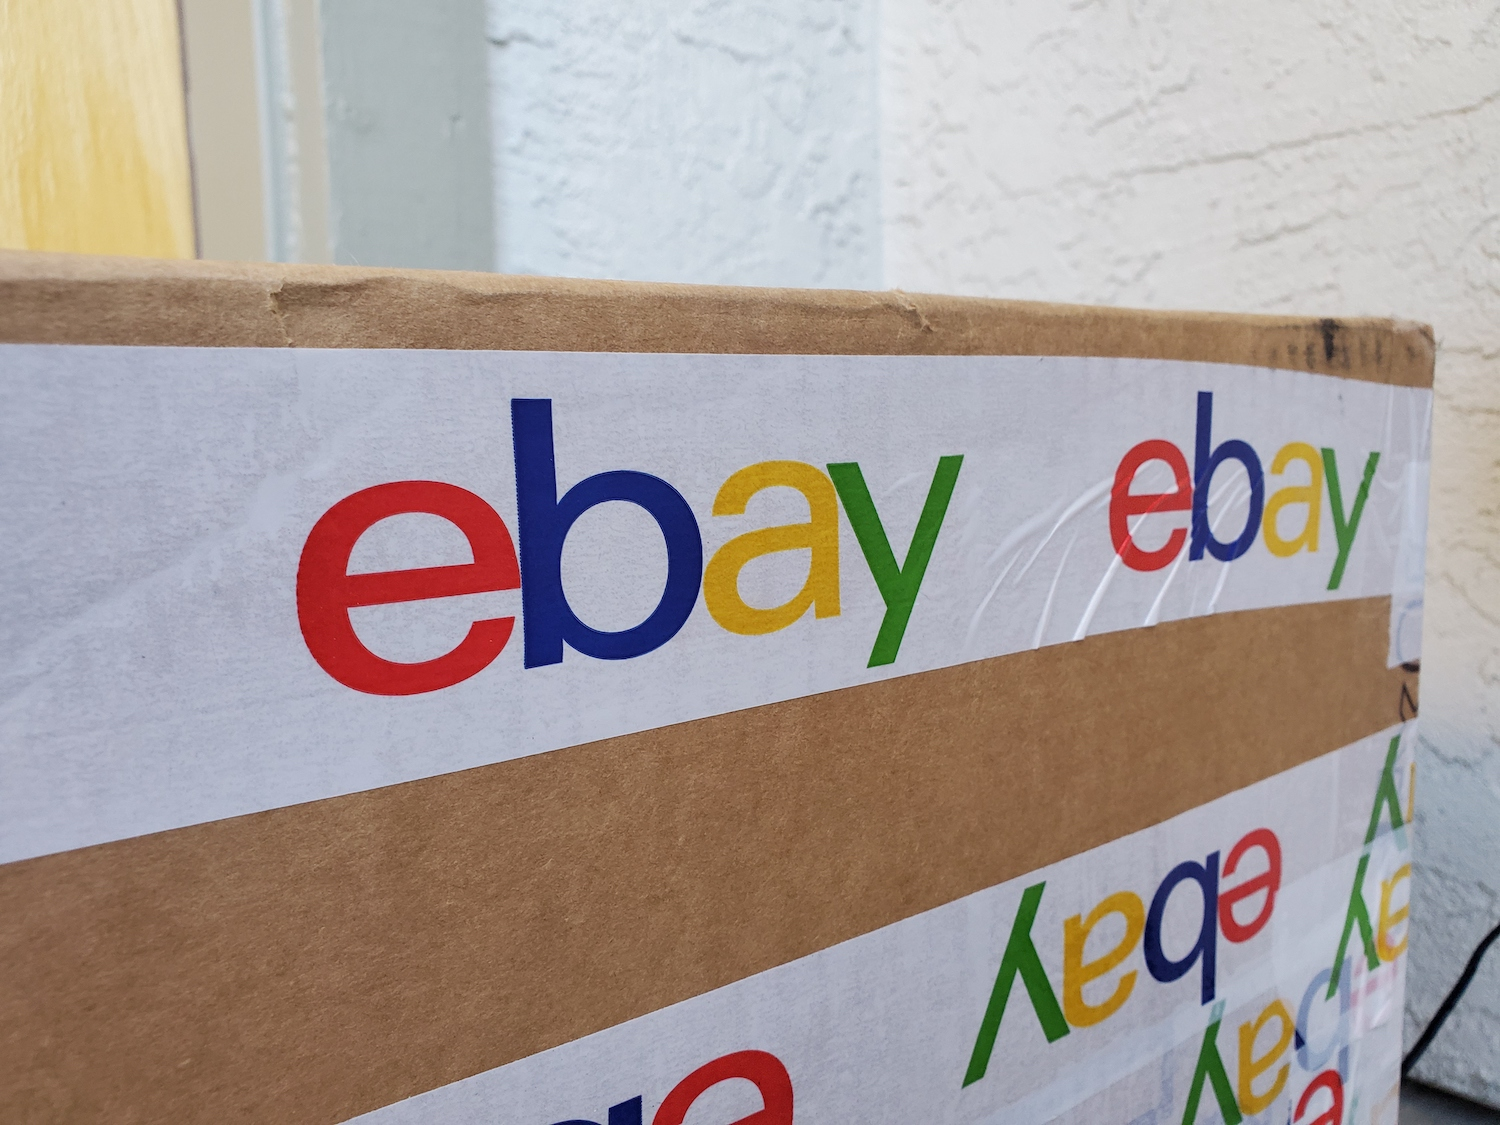 EBay CEO Hints at Crypto Payments, NFT Sales